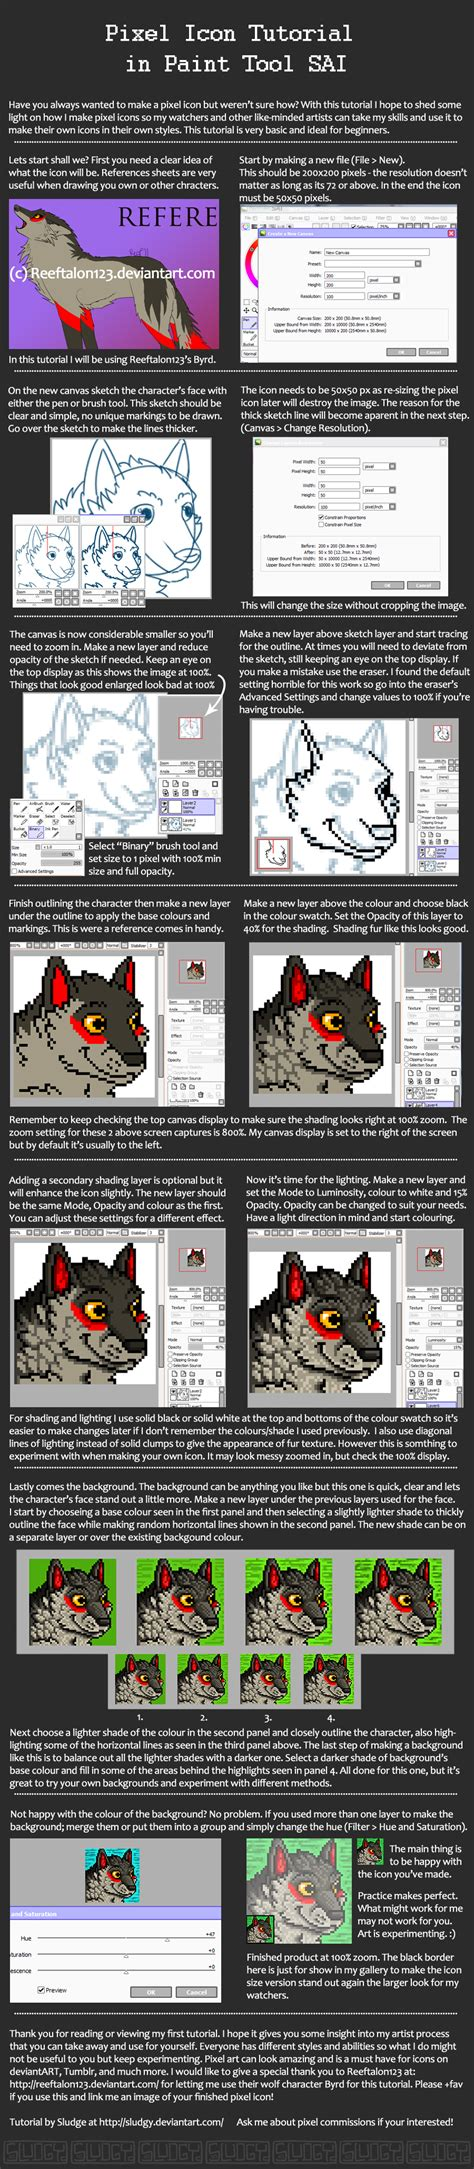 digital tutorial paint tool sai digital painting tutorials and inspiration on